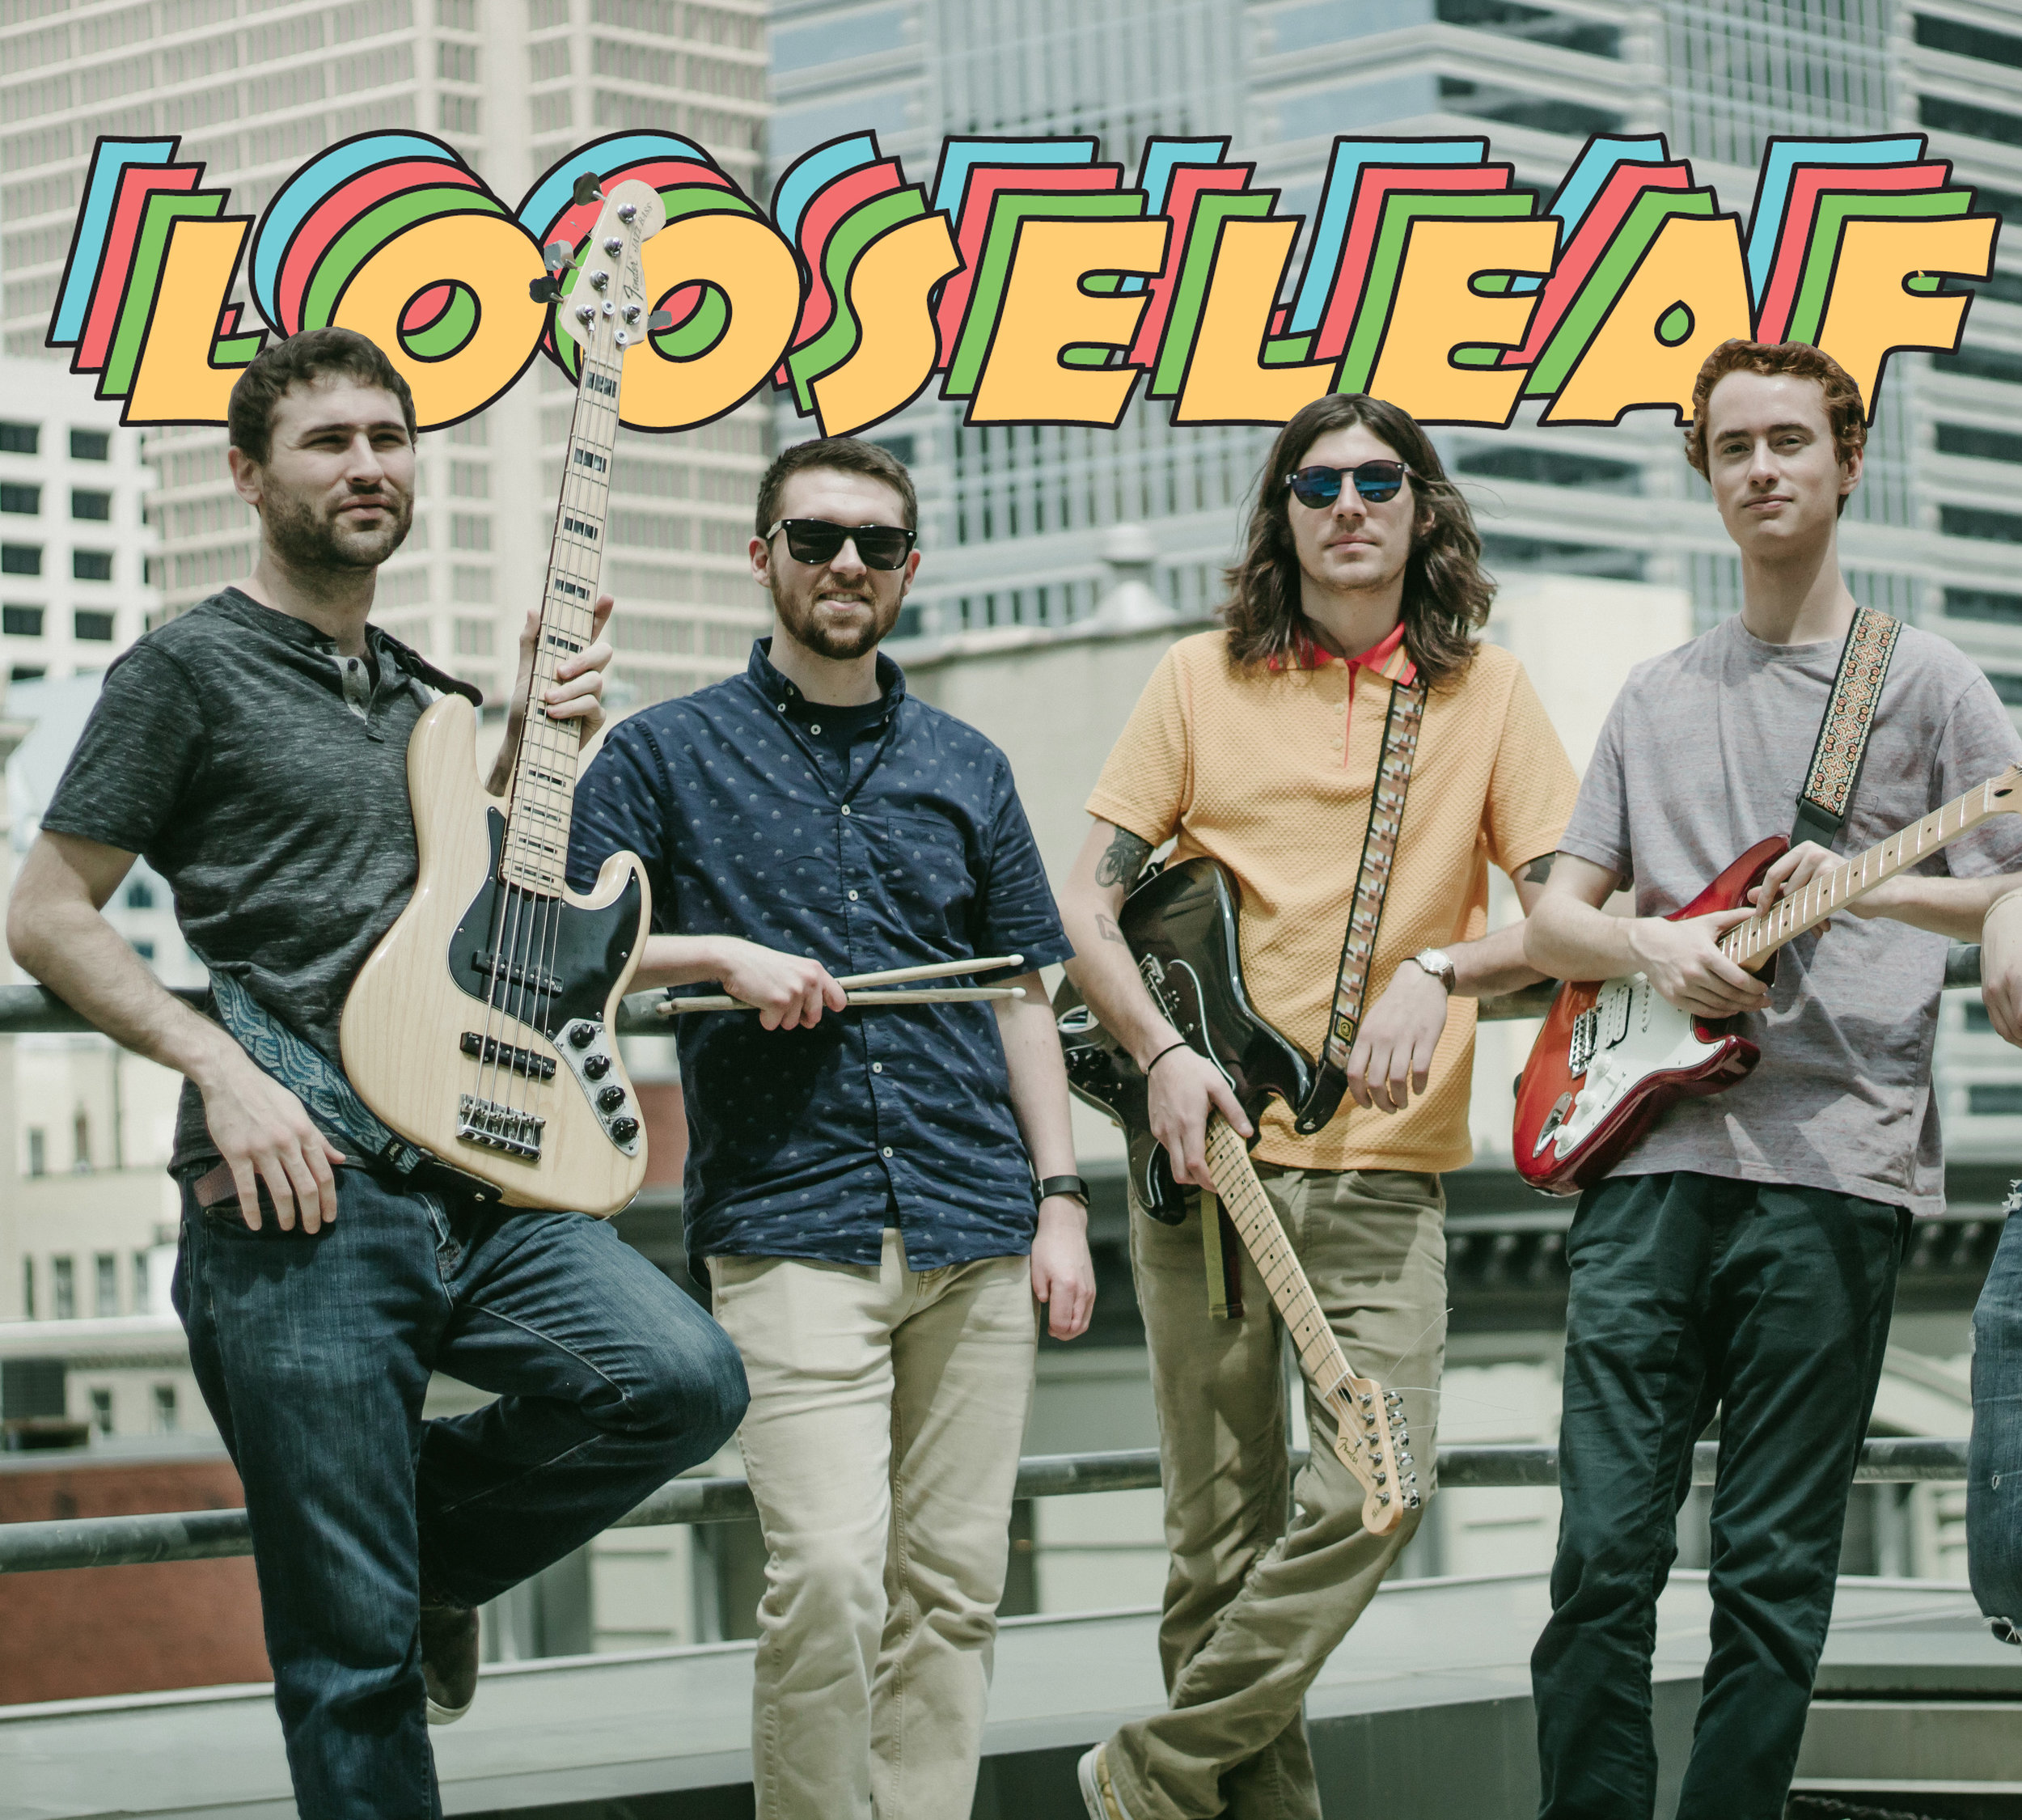 Looseleaf_the_Band.jpg